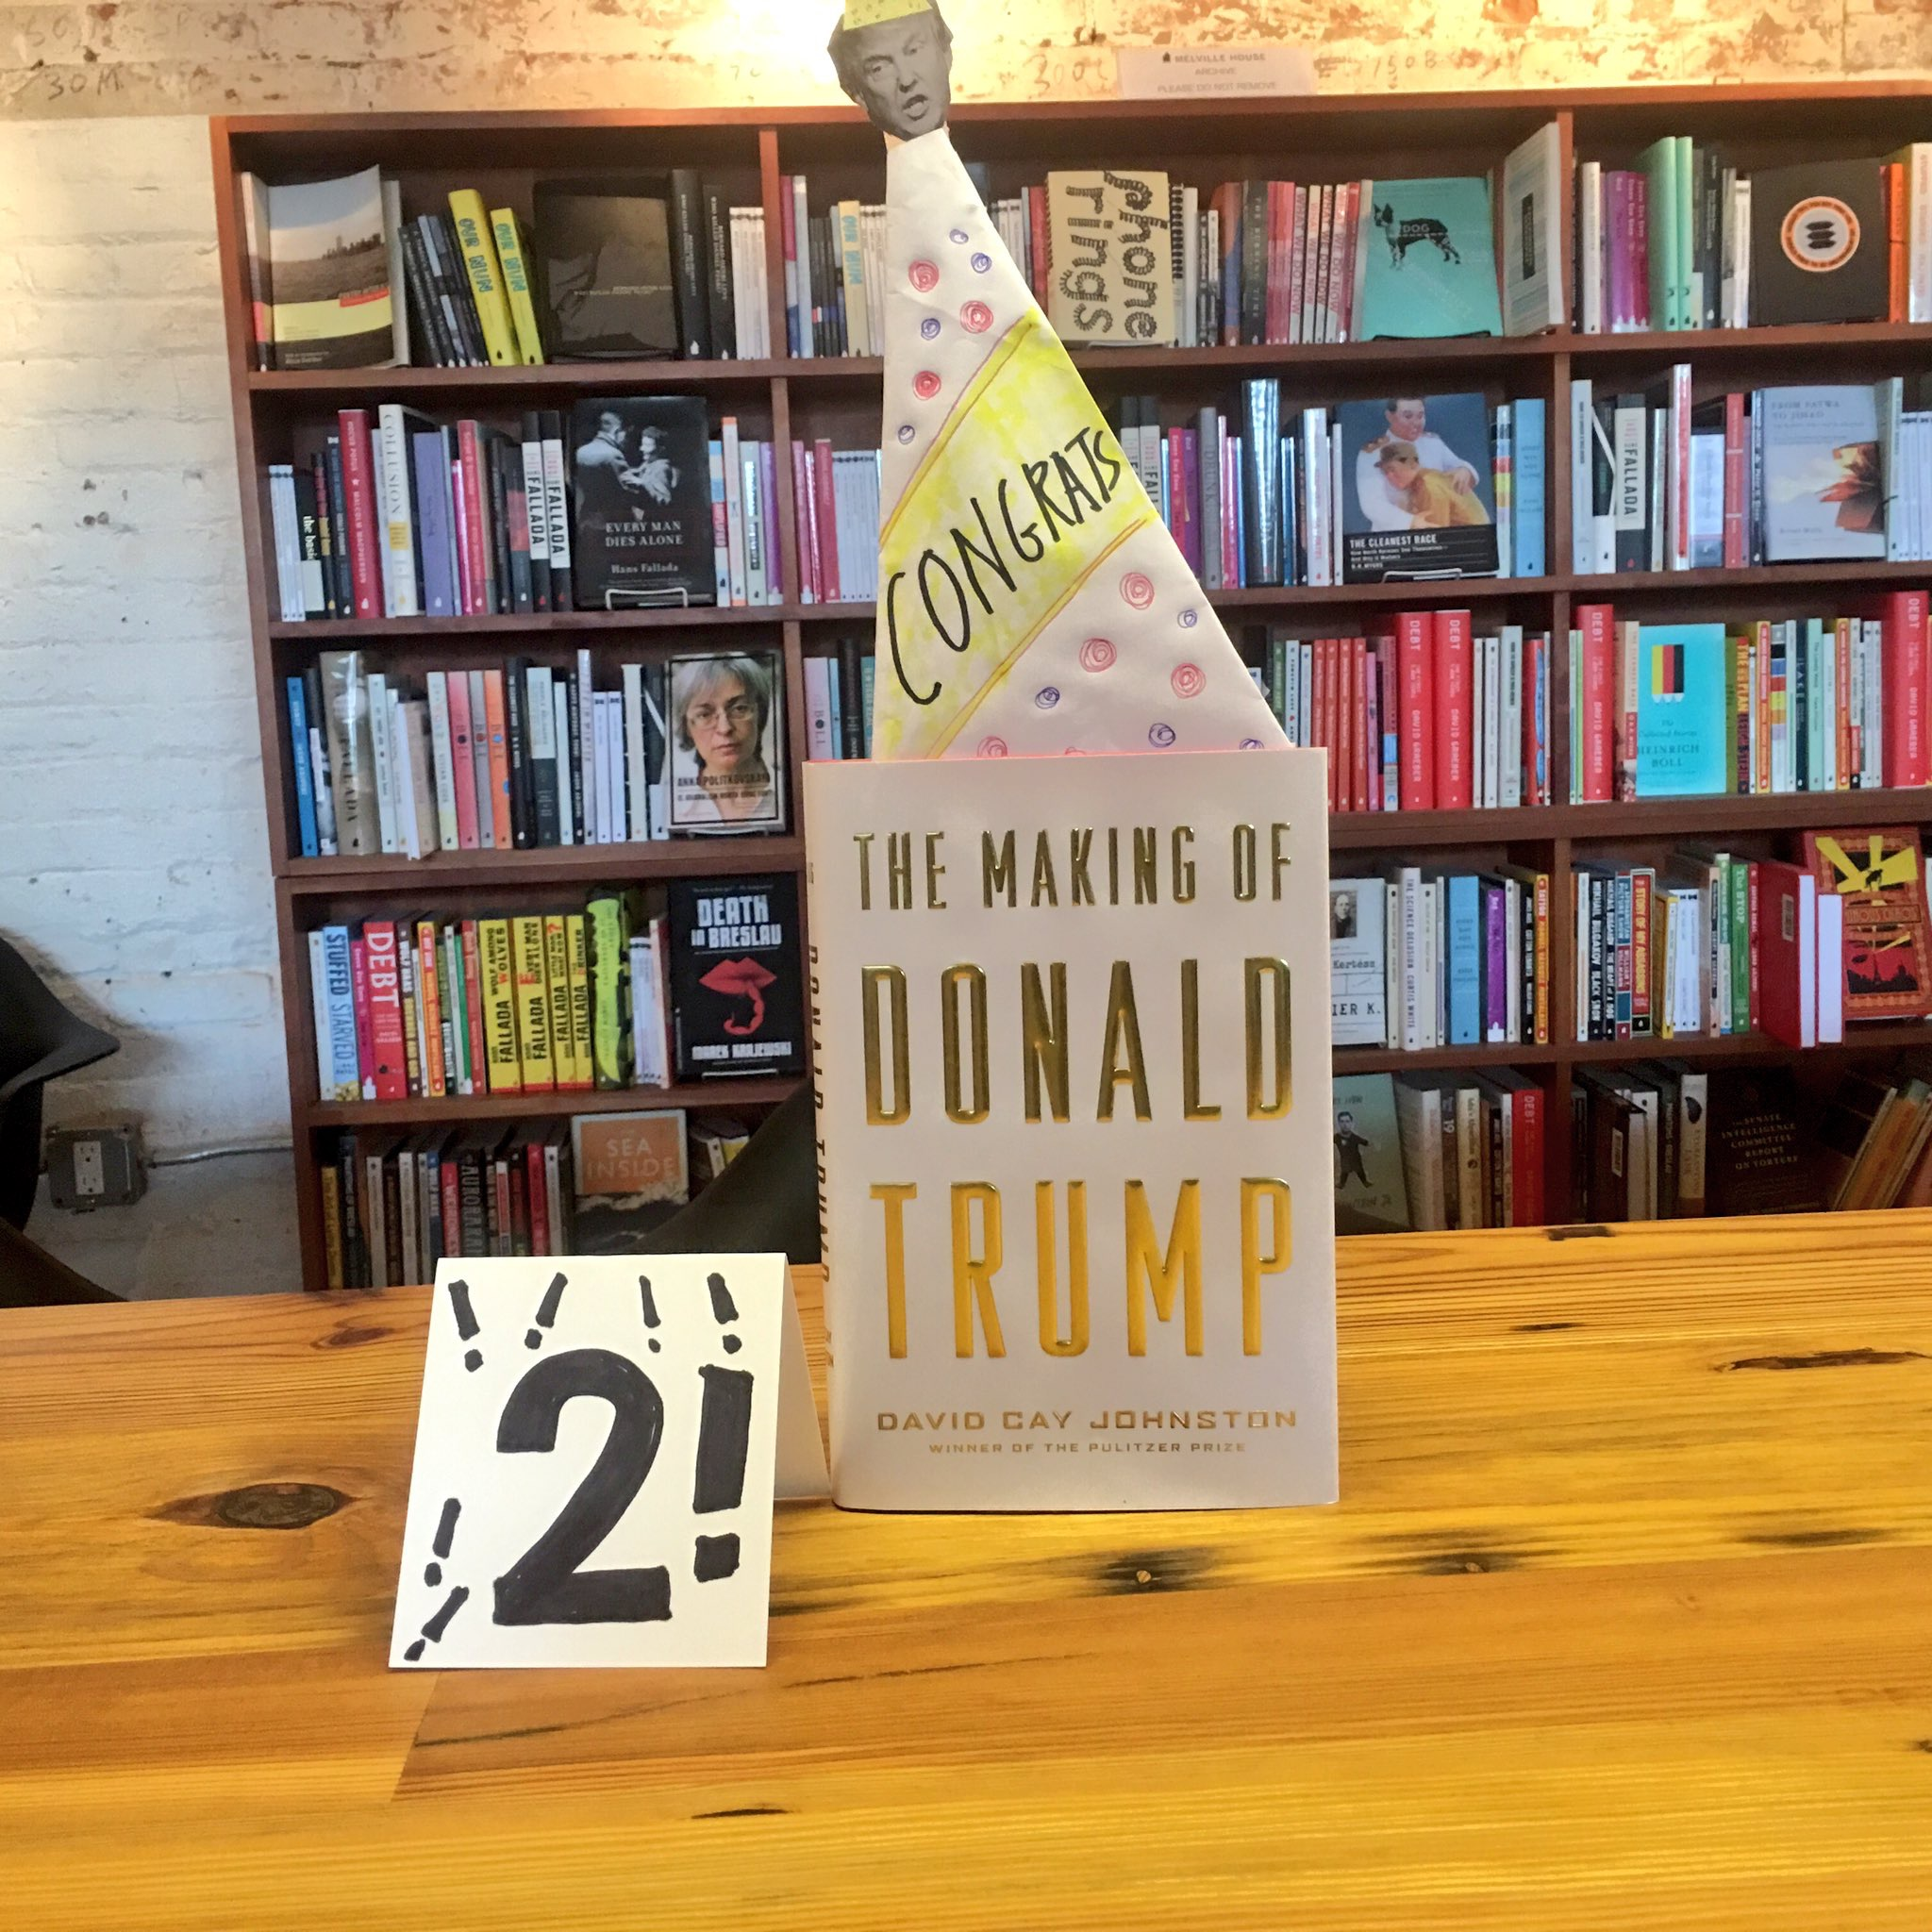 <strong>The Making of Donald Trump</strong> is a bestseller for two weeks running